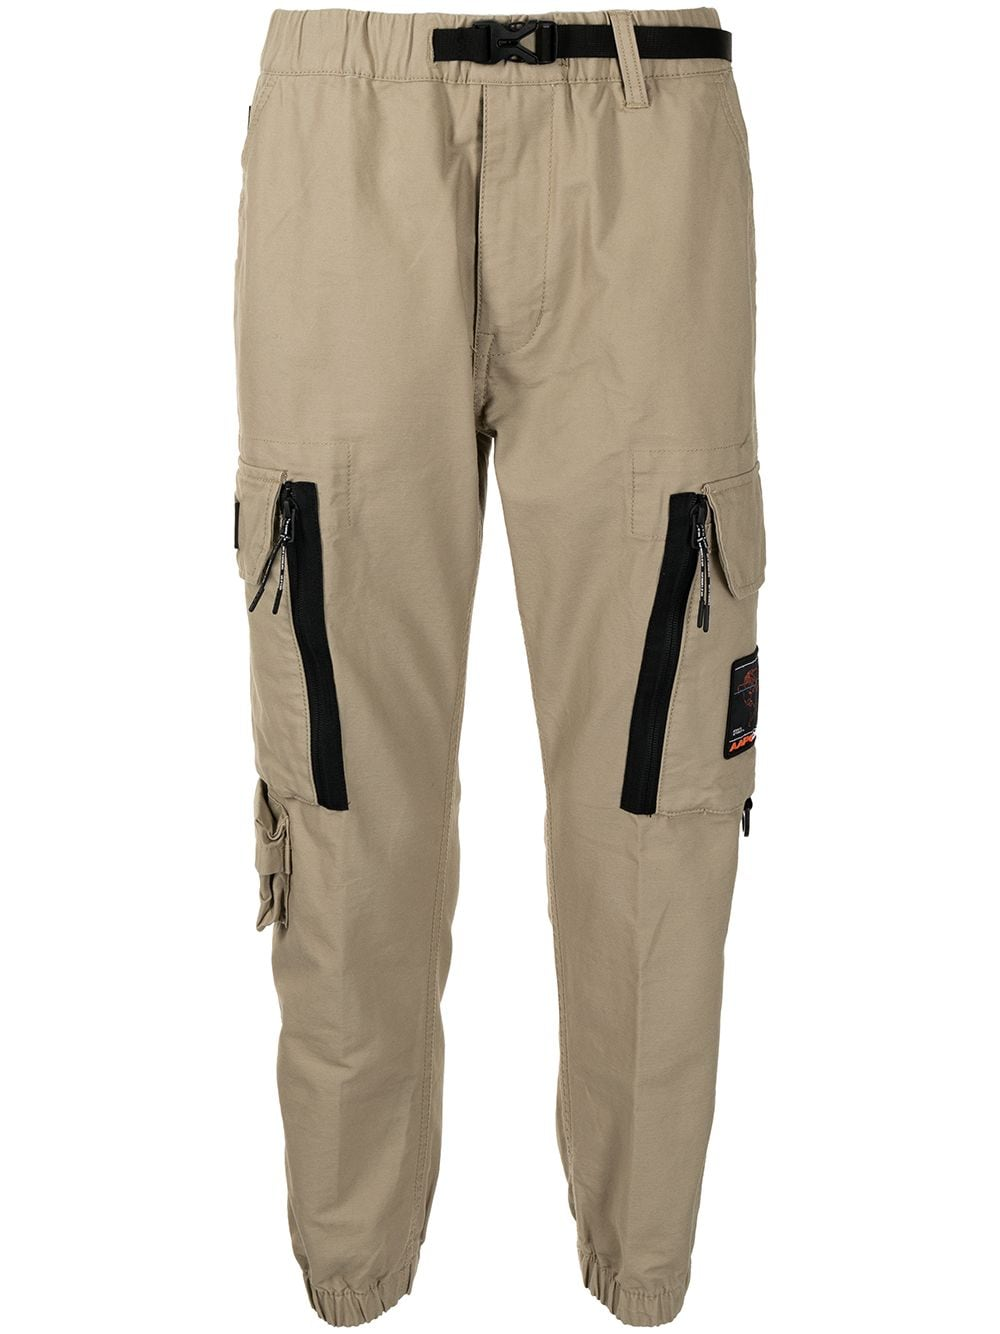 AAPE BY *A BATHING APE® Cargohose mit Logo-Patch - Braun von AAPE BY *A BATHING APE®